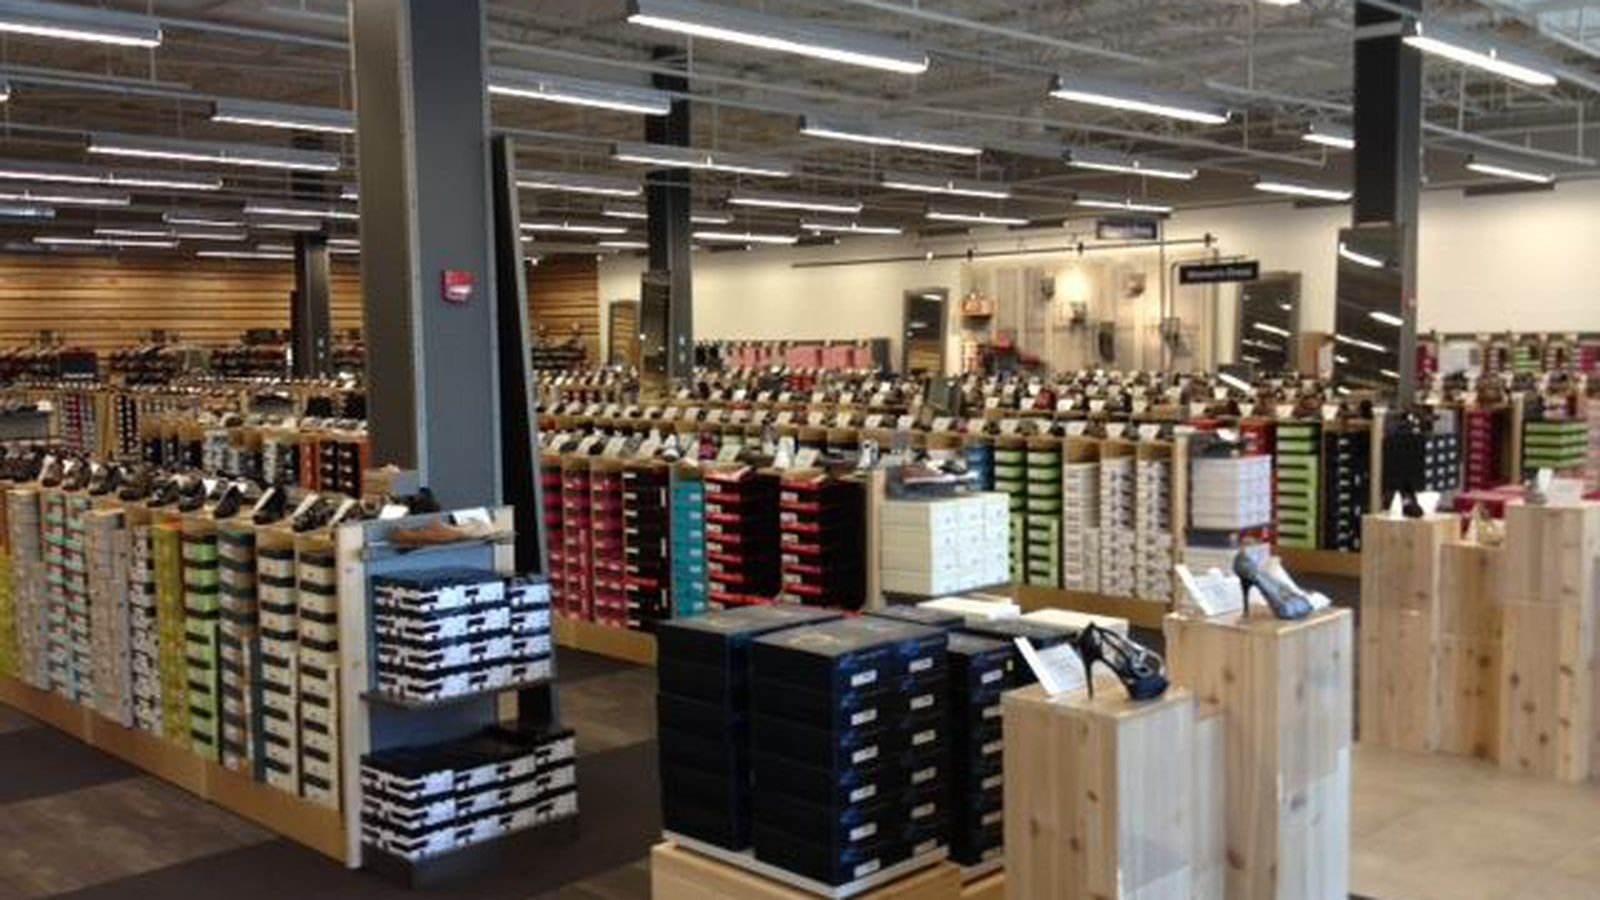 DSW to pay $900,000 over age discrimination accusations